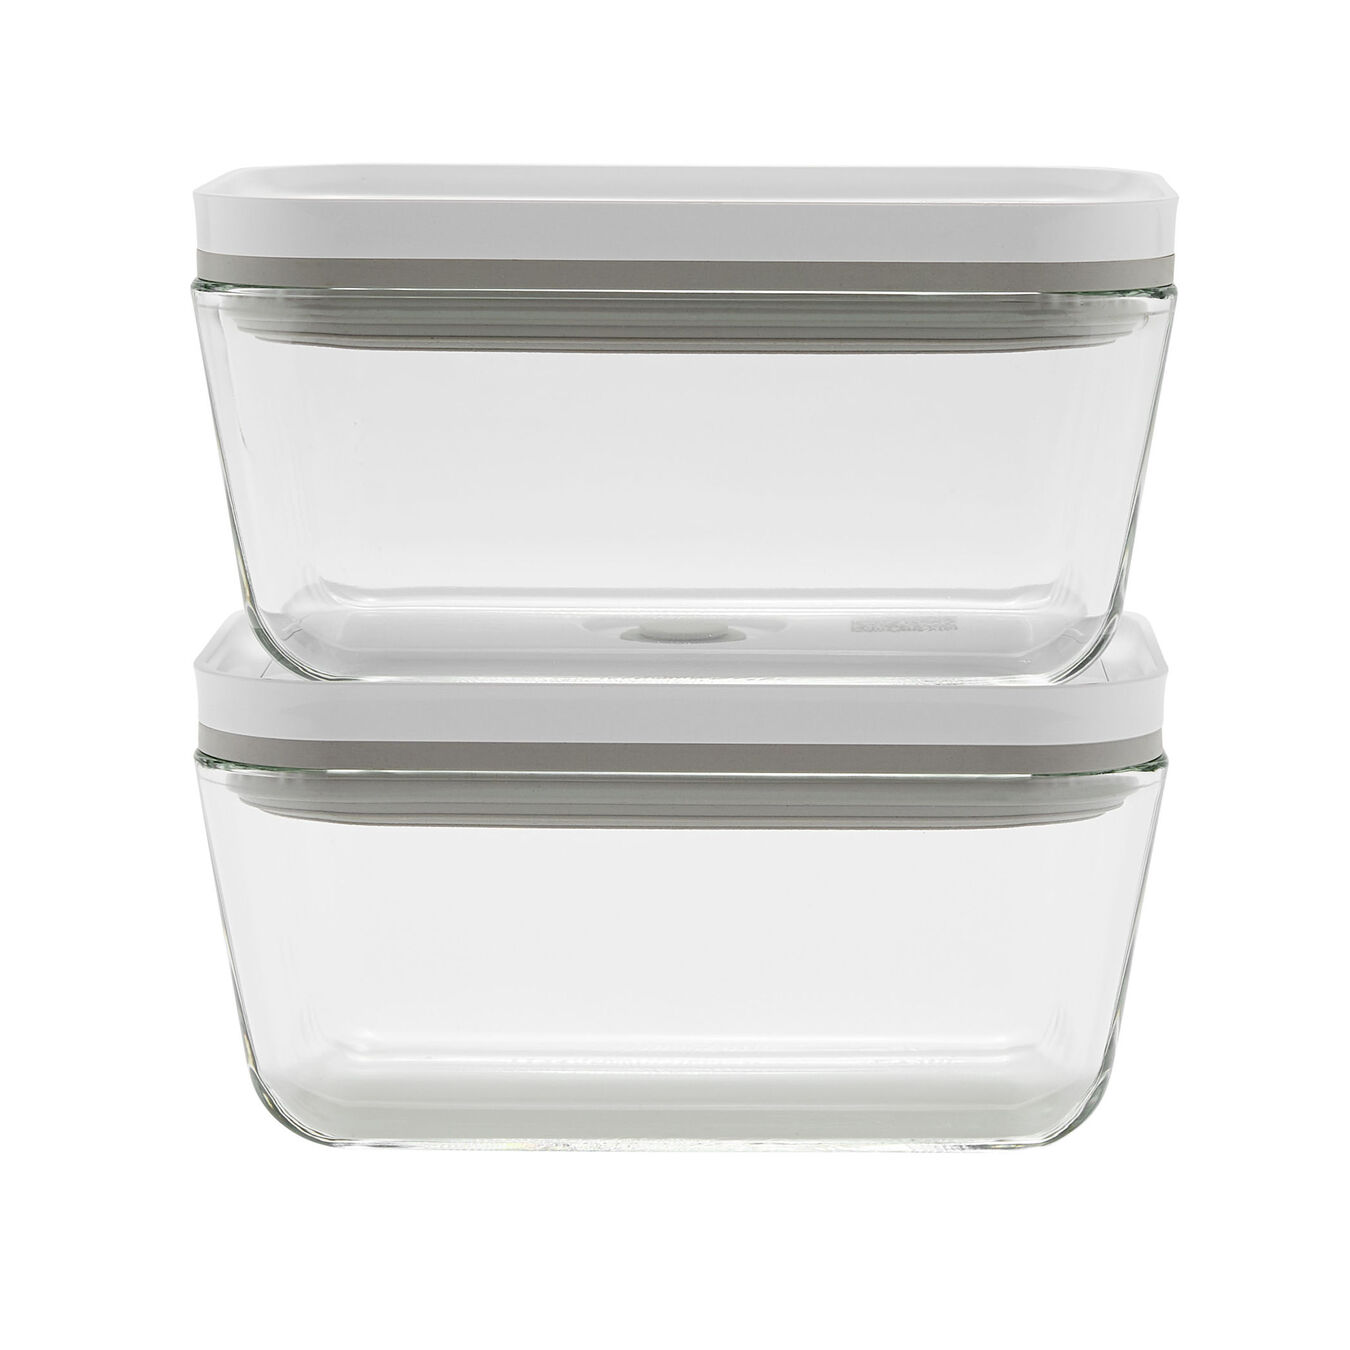 2-pc Vacuum box set, Borosilicate glass, white,,large 1